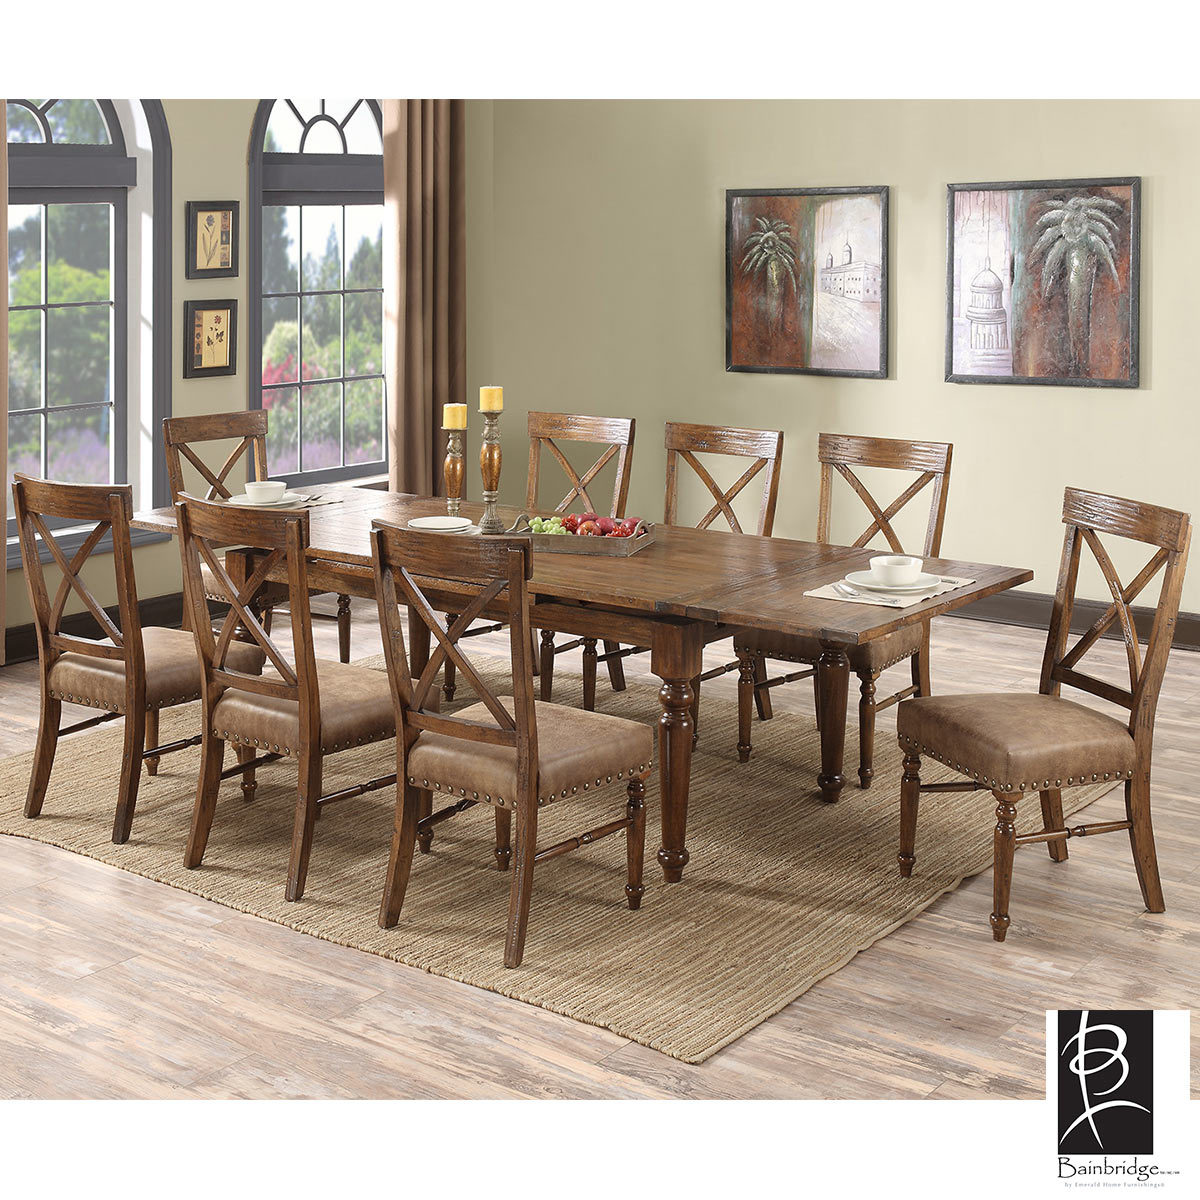 Dining Table 8 Chairs Chattanooga Extending Dining Room Table 8 Chairs Costco Uk